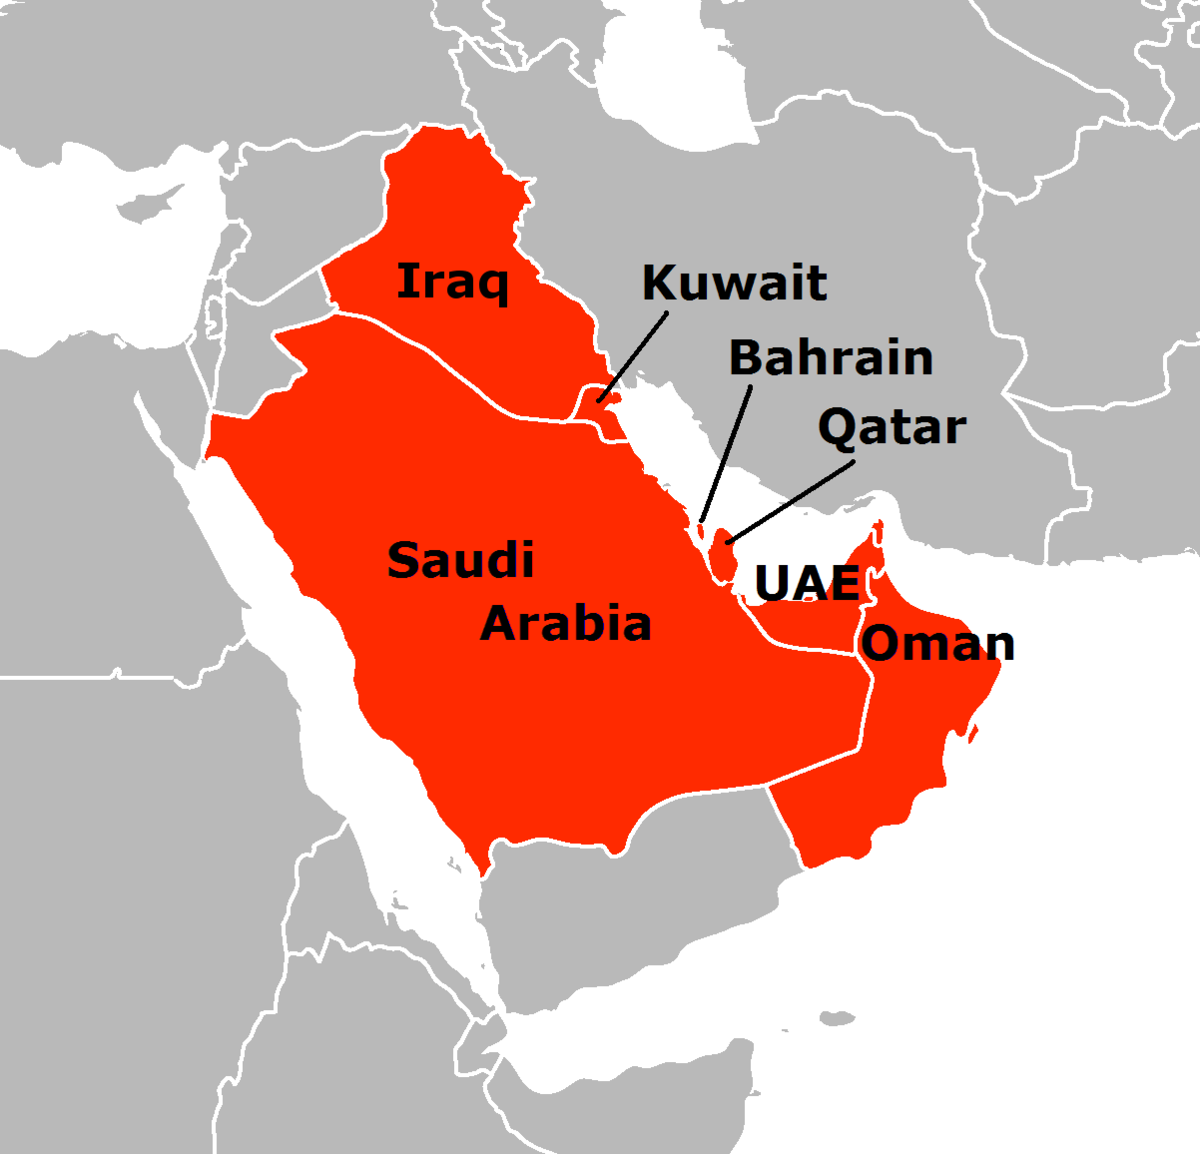 Arab states of the Persian Gulf